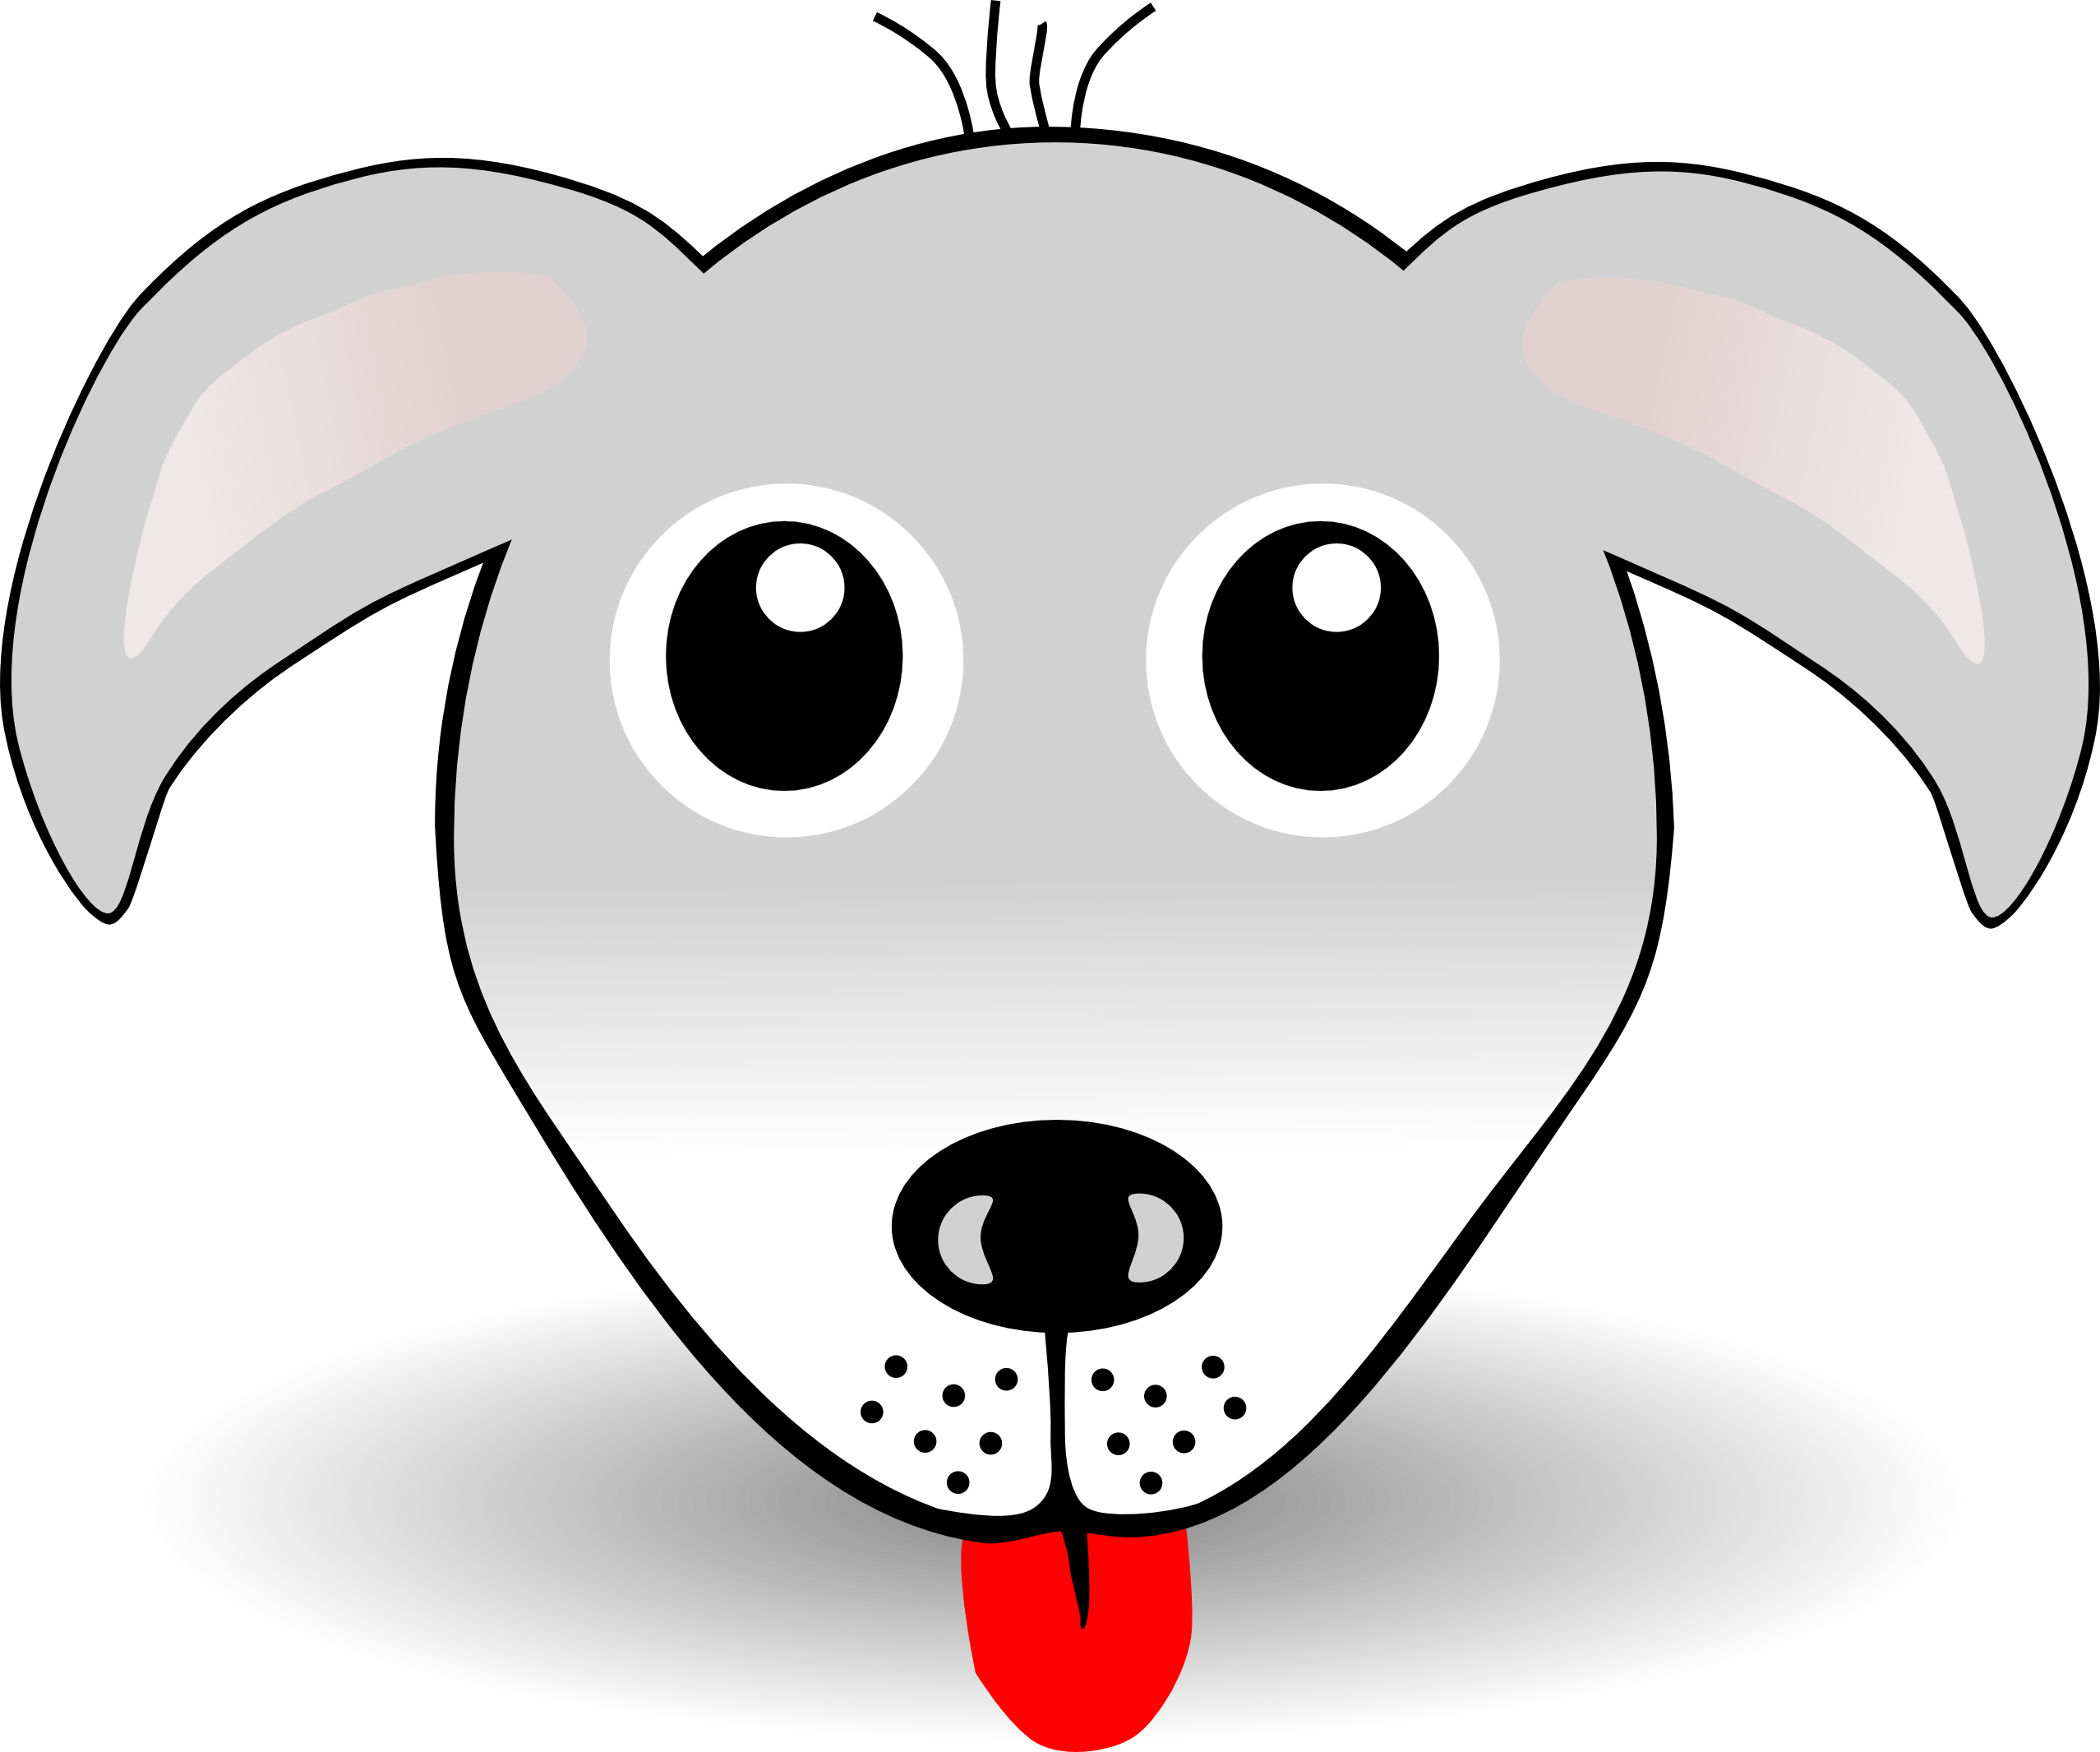 Dog Tags Clipart - ClipArt Best